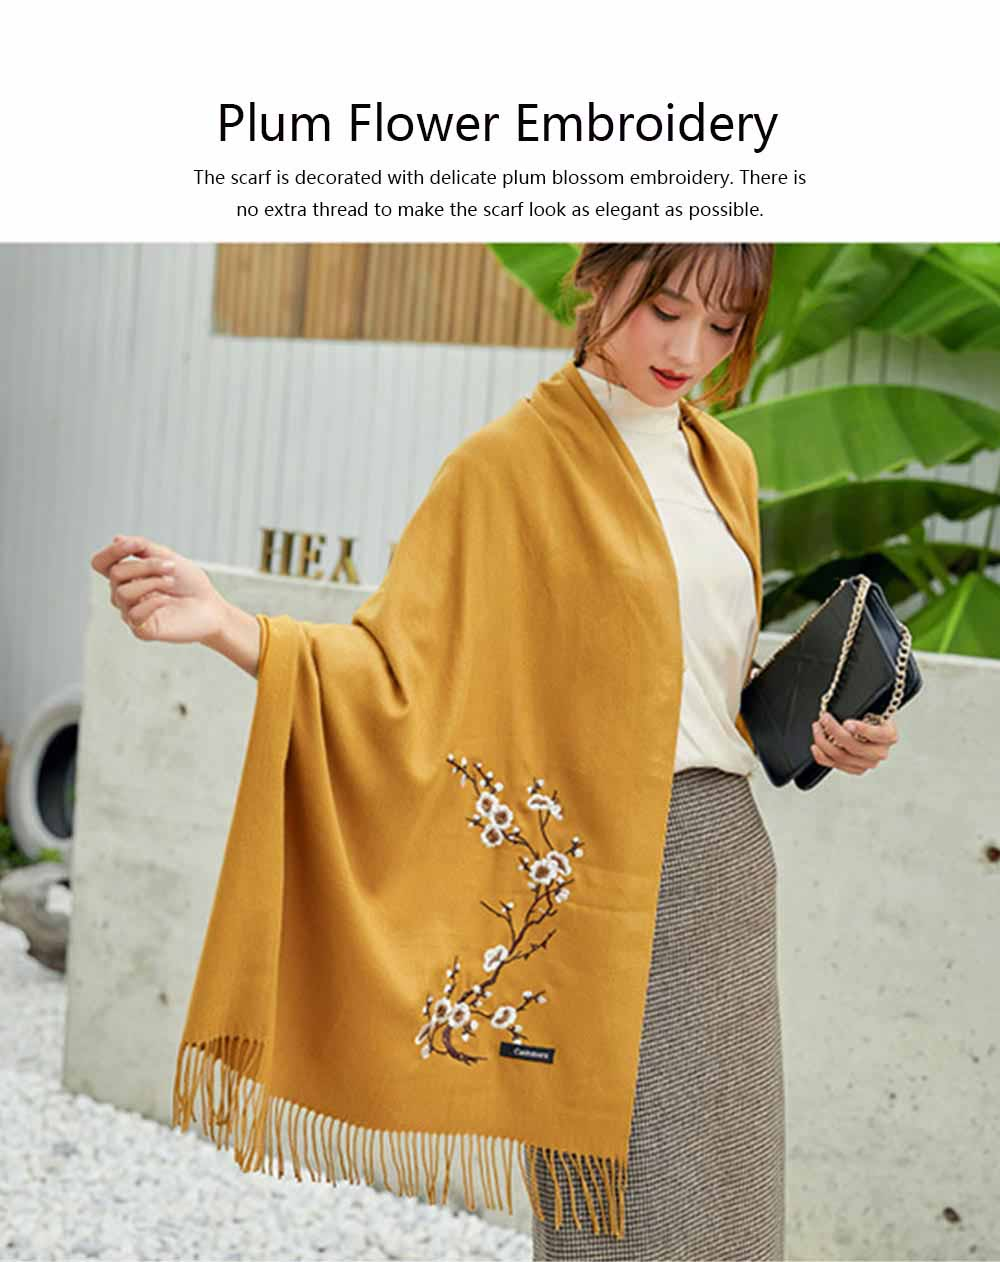 Lady's Embroidered Shawl Lady's Embroidered Cashmere Scarf for Sun & Cold Protection 2